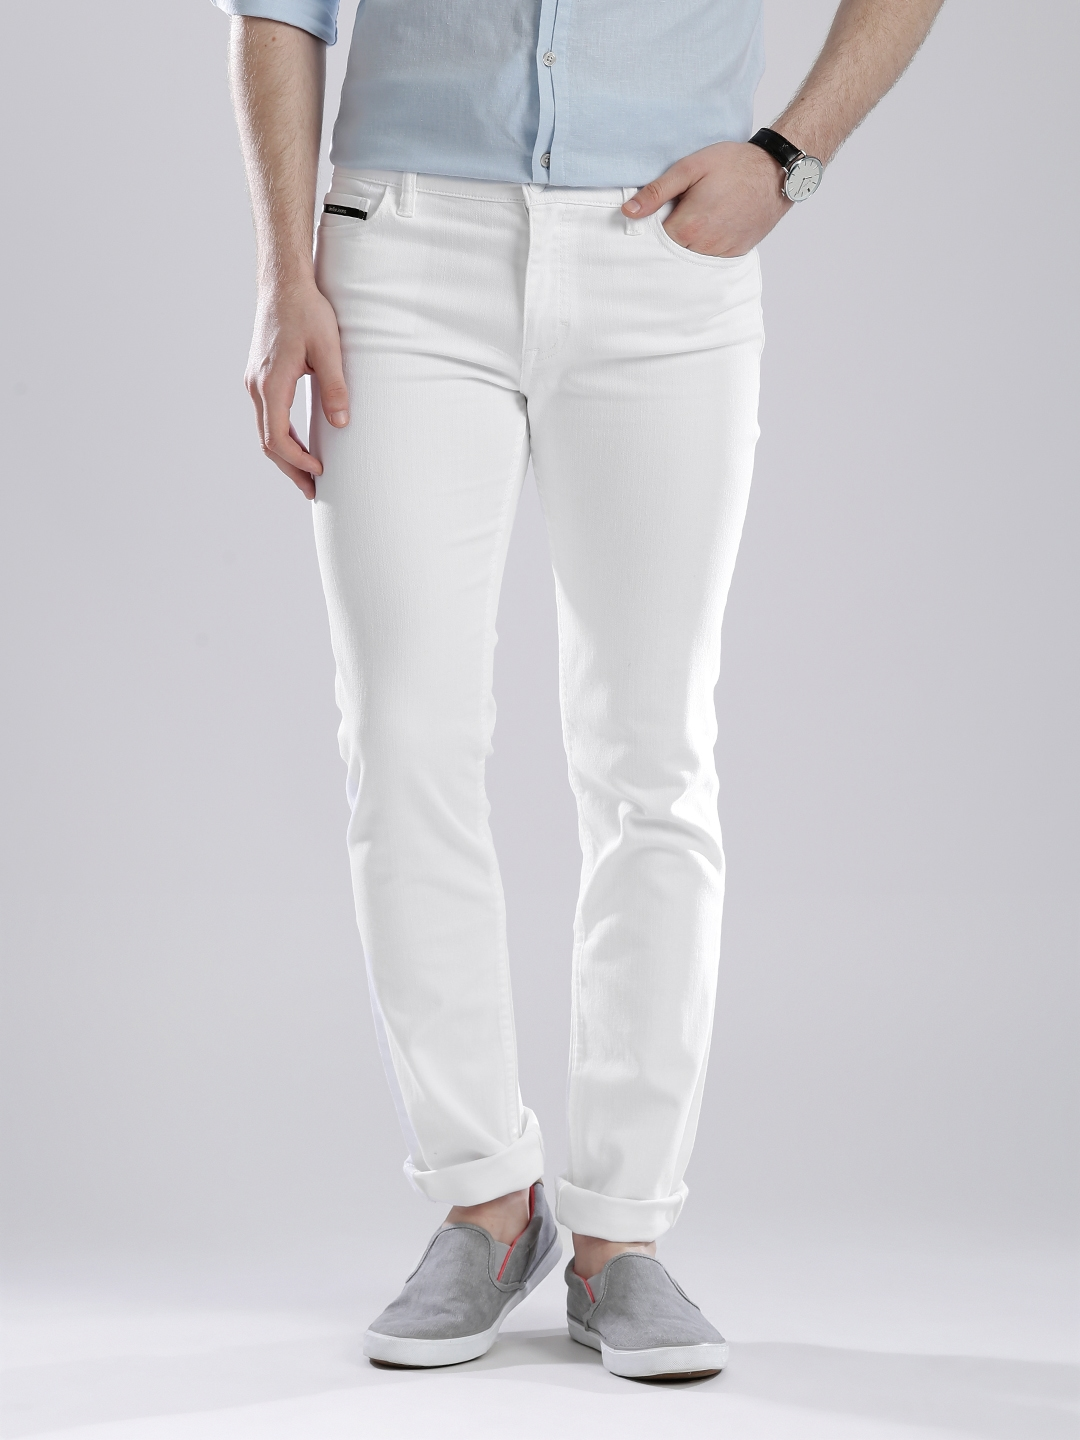 a630c3cf0f9 Buy Calvin Klein Jeans White Skinny Fit Jeans - Jeans for Men ...